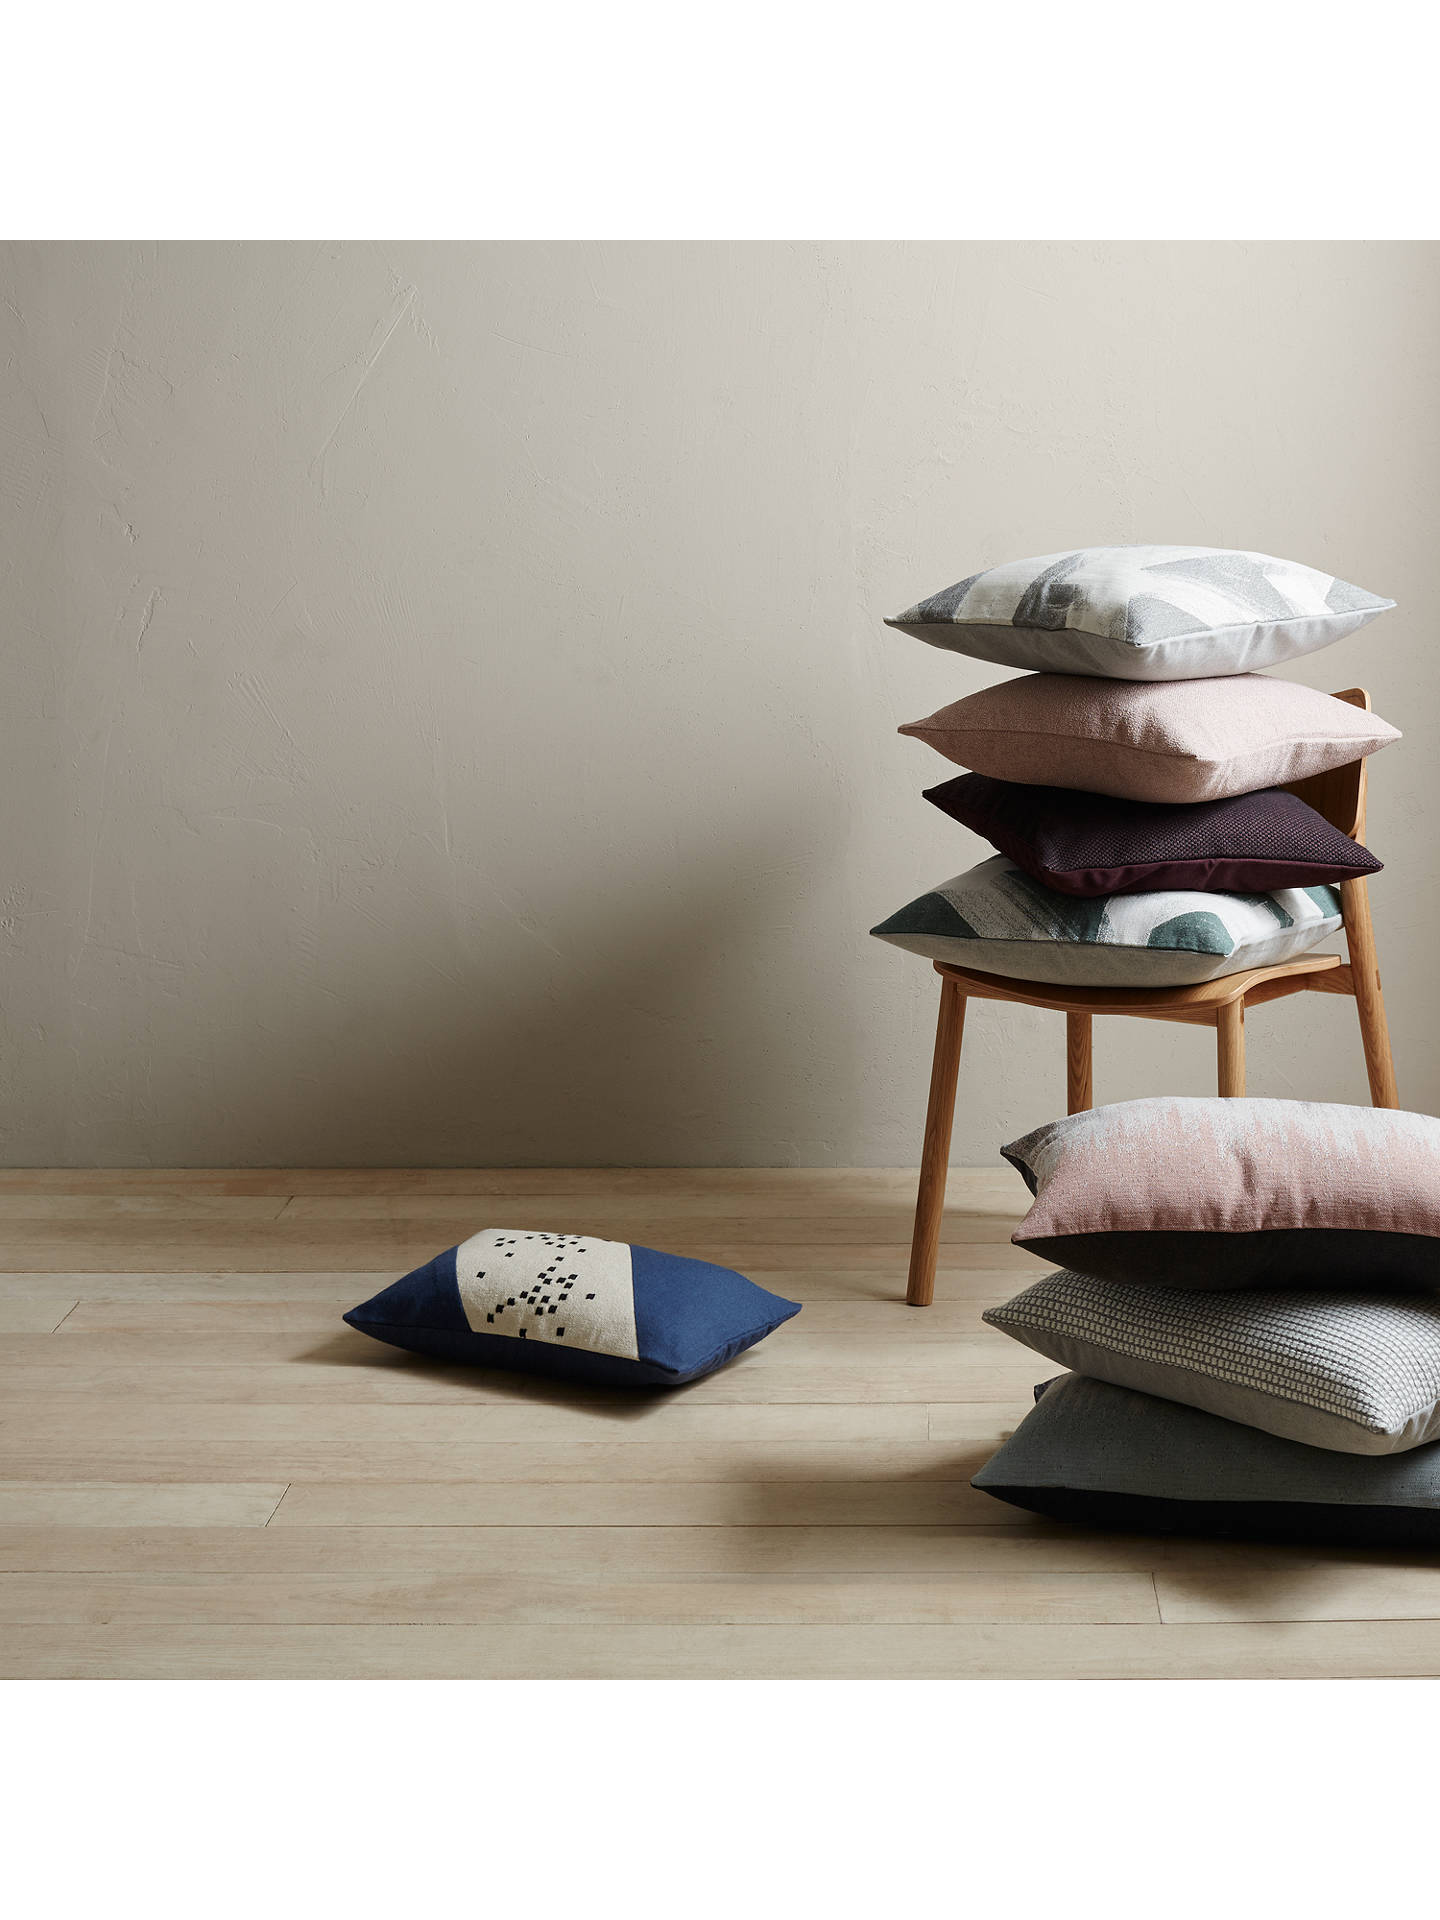 BuyDesign Project by John Lewis No.016 Cushion, Plaster Online at johnlewis.com